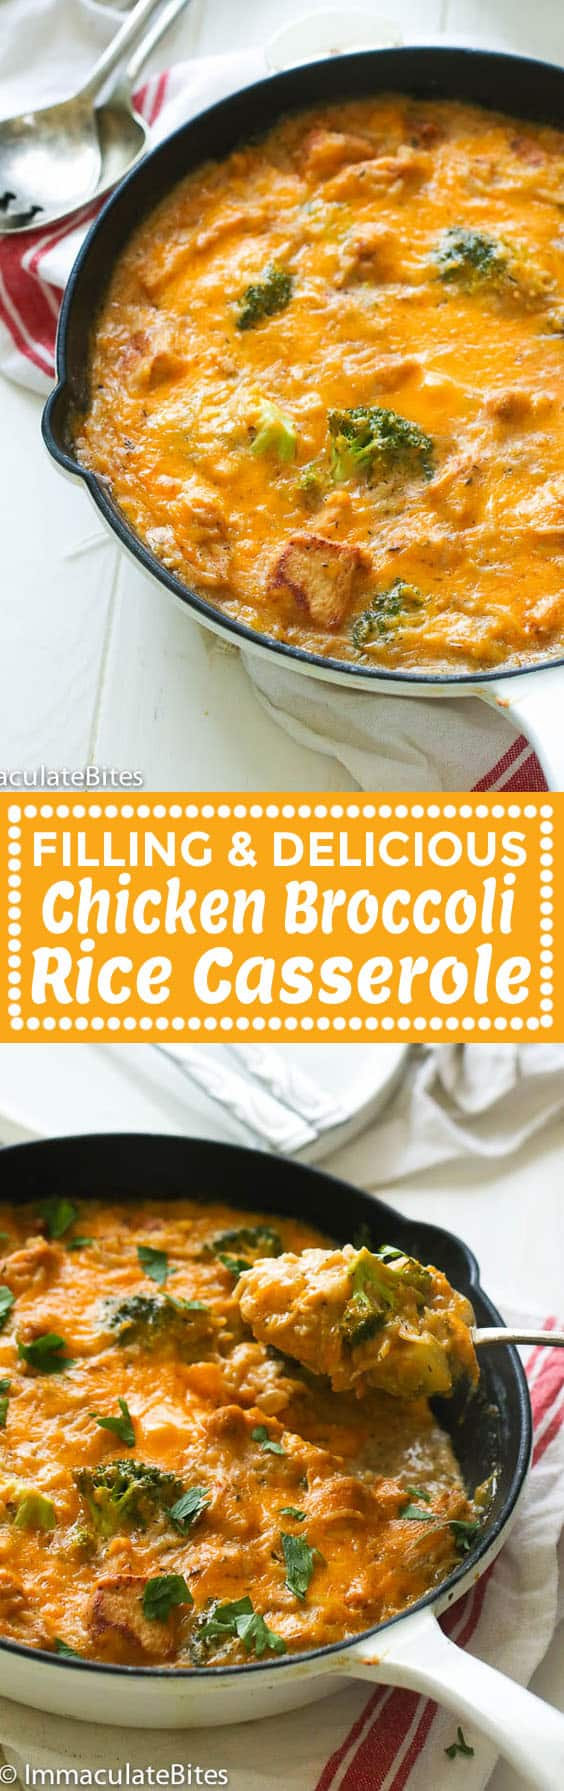 chicken broccoli rice casserole